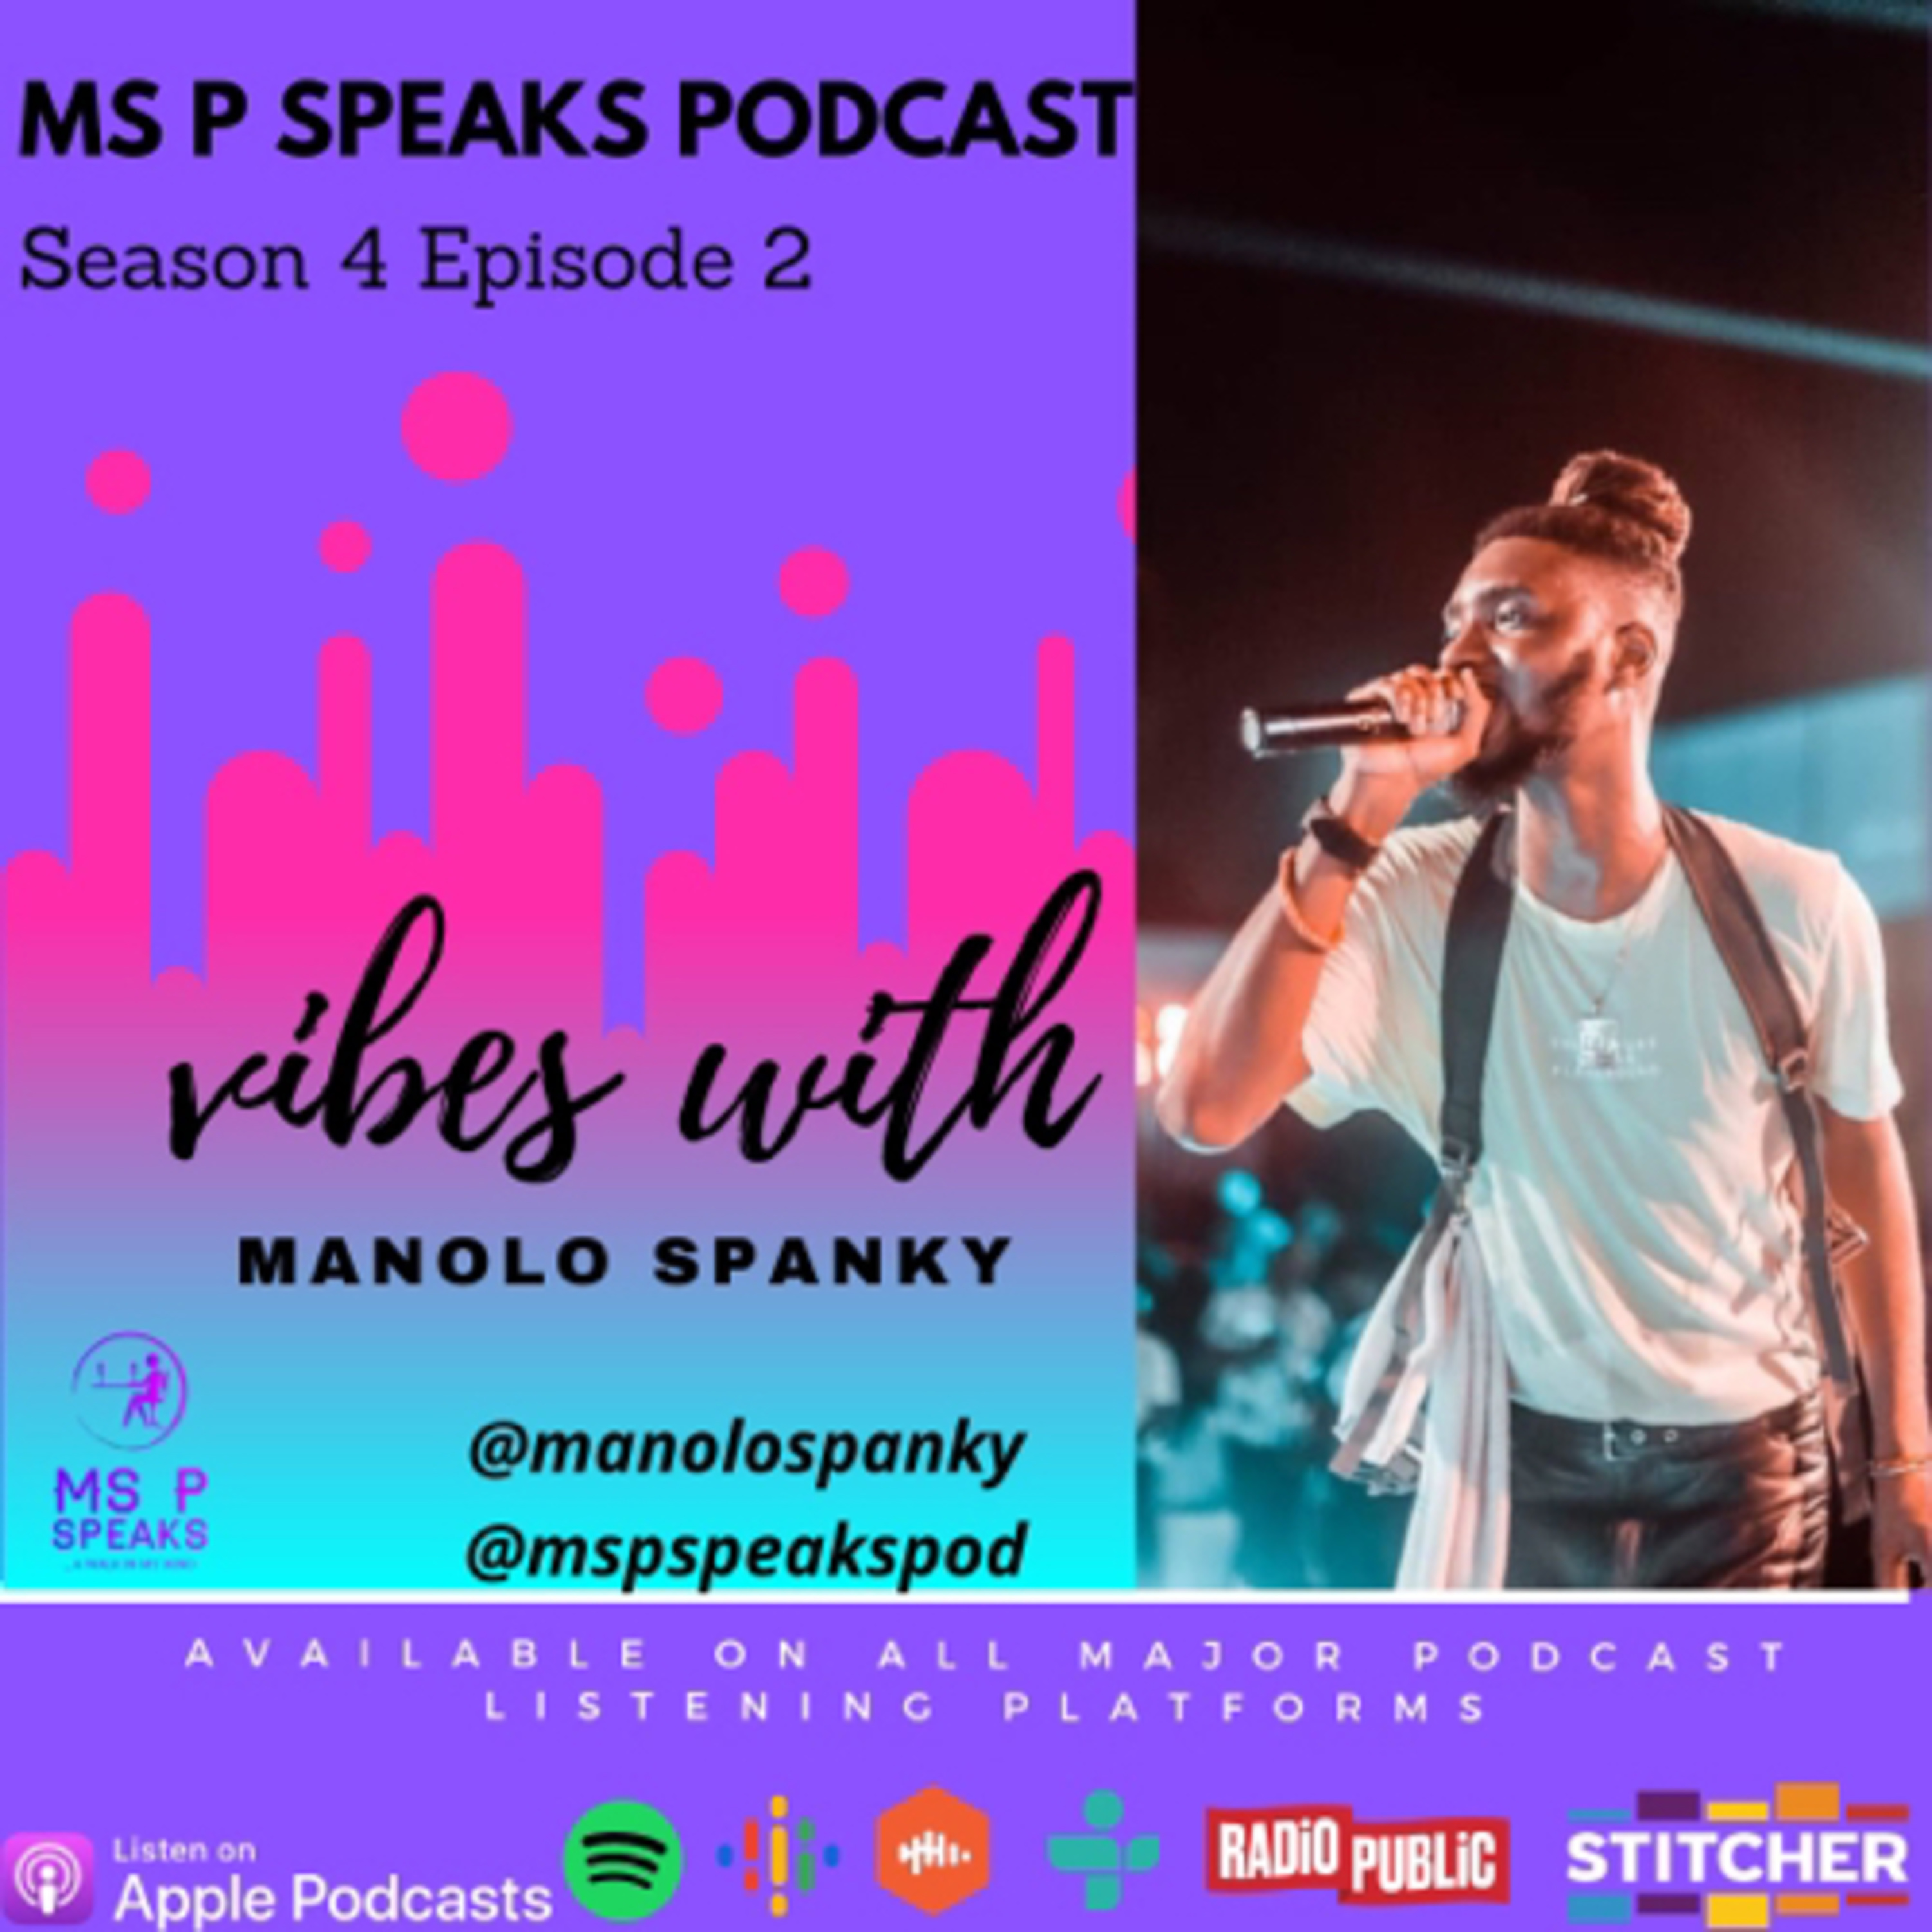 Season 4; Episode 2 - Vibes With Manolo Spanky Image